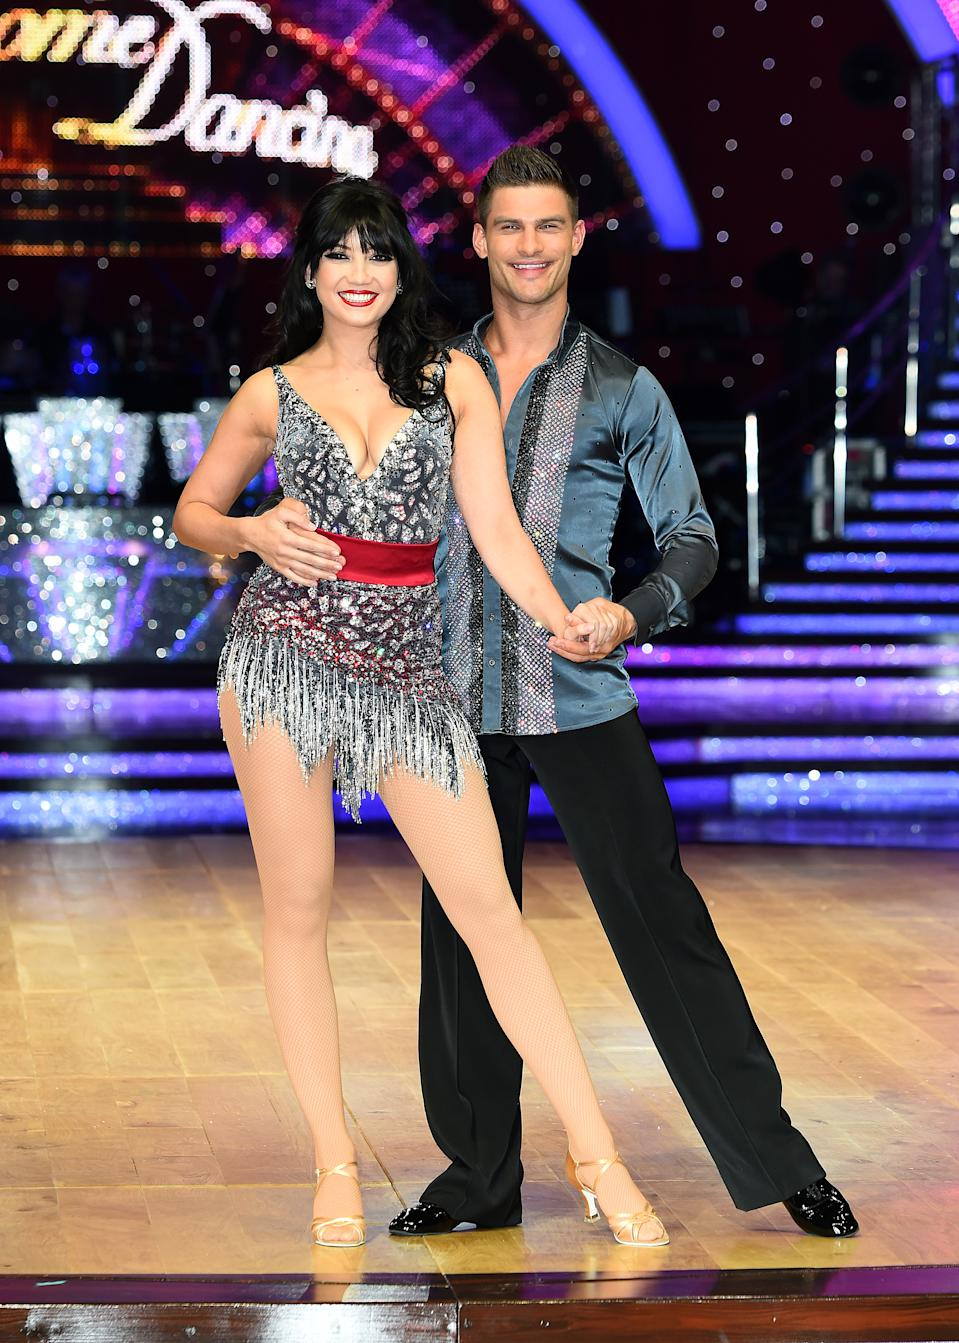 BIRMINGHAM, ENGLAND - JANUARY 19:  Daisy Lowe and Aljaz Skorjanec attend the Strictly Come Dancing Live Tour Photocall on January 19, 2017 in Birmingham, England.  (Photo by Eamonn M. McCormack/Getty Images)